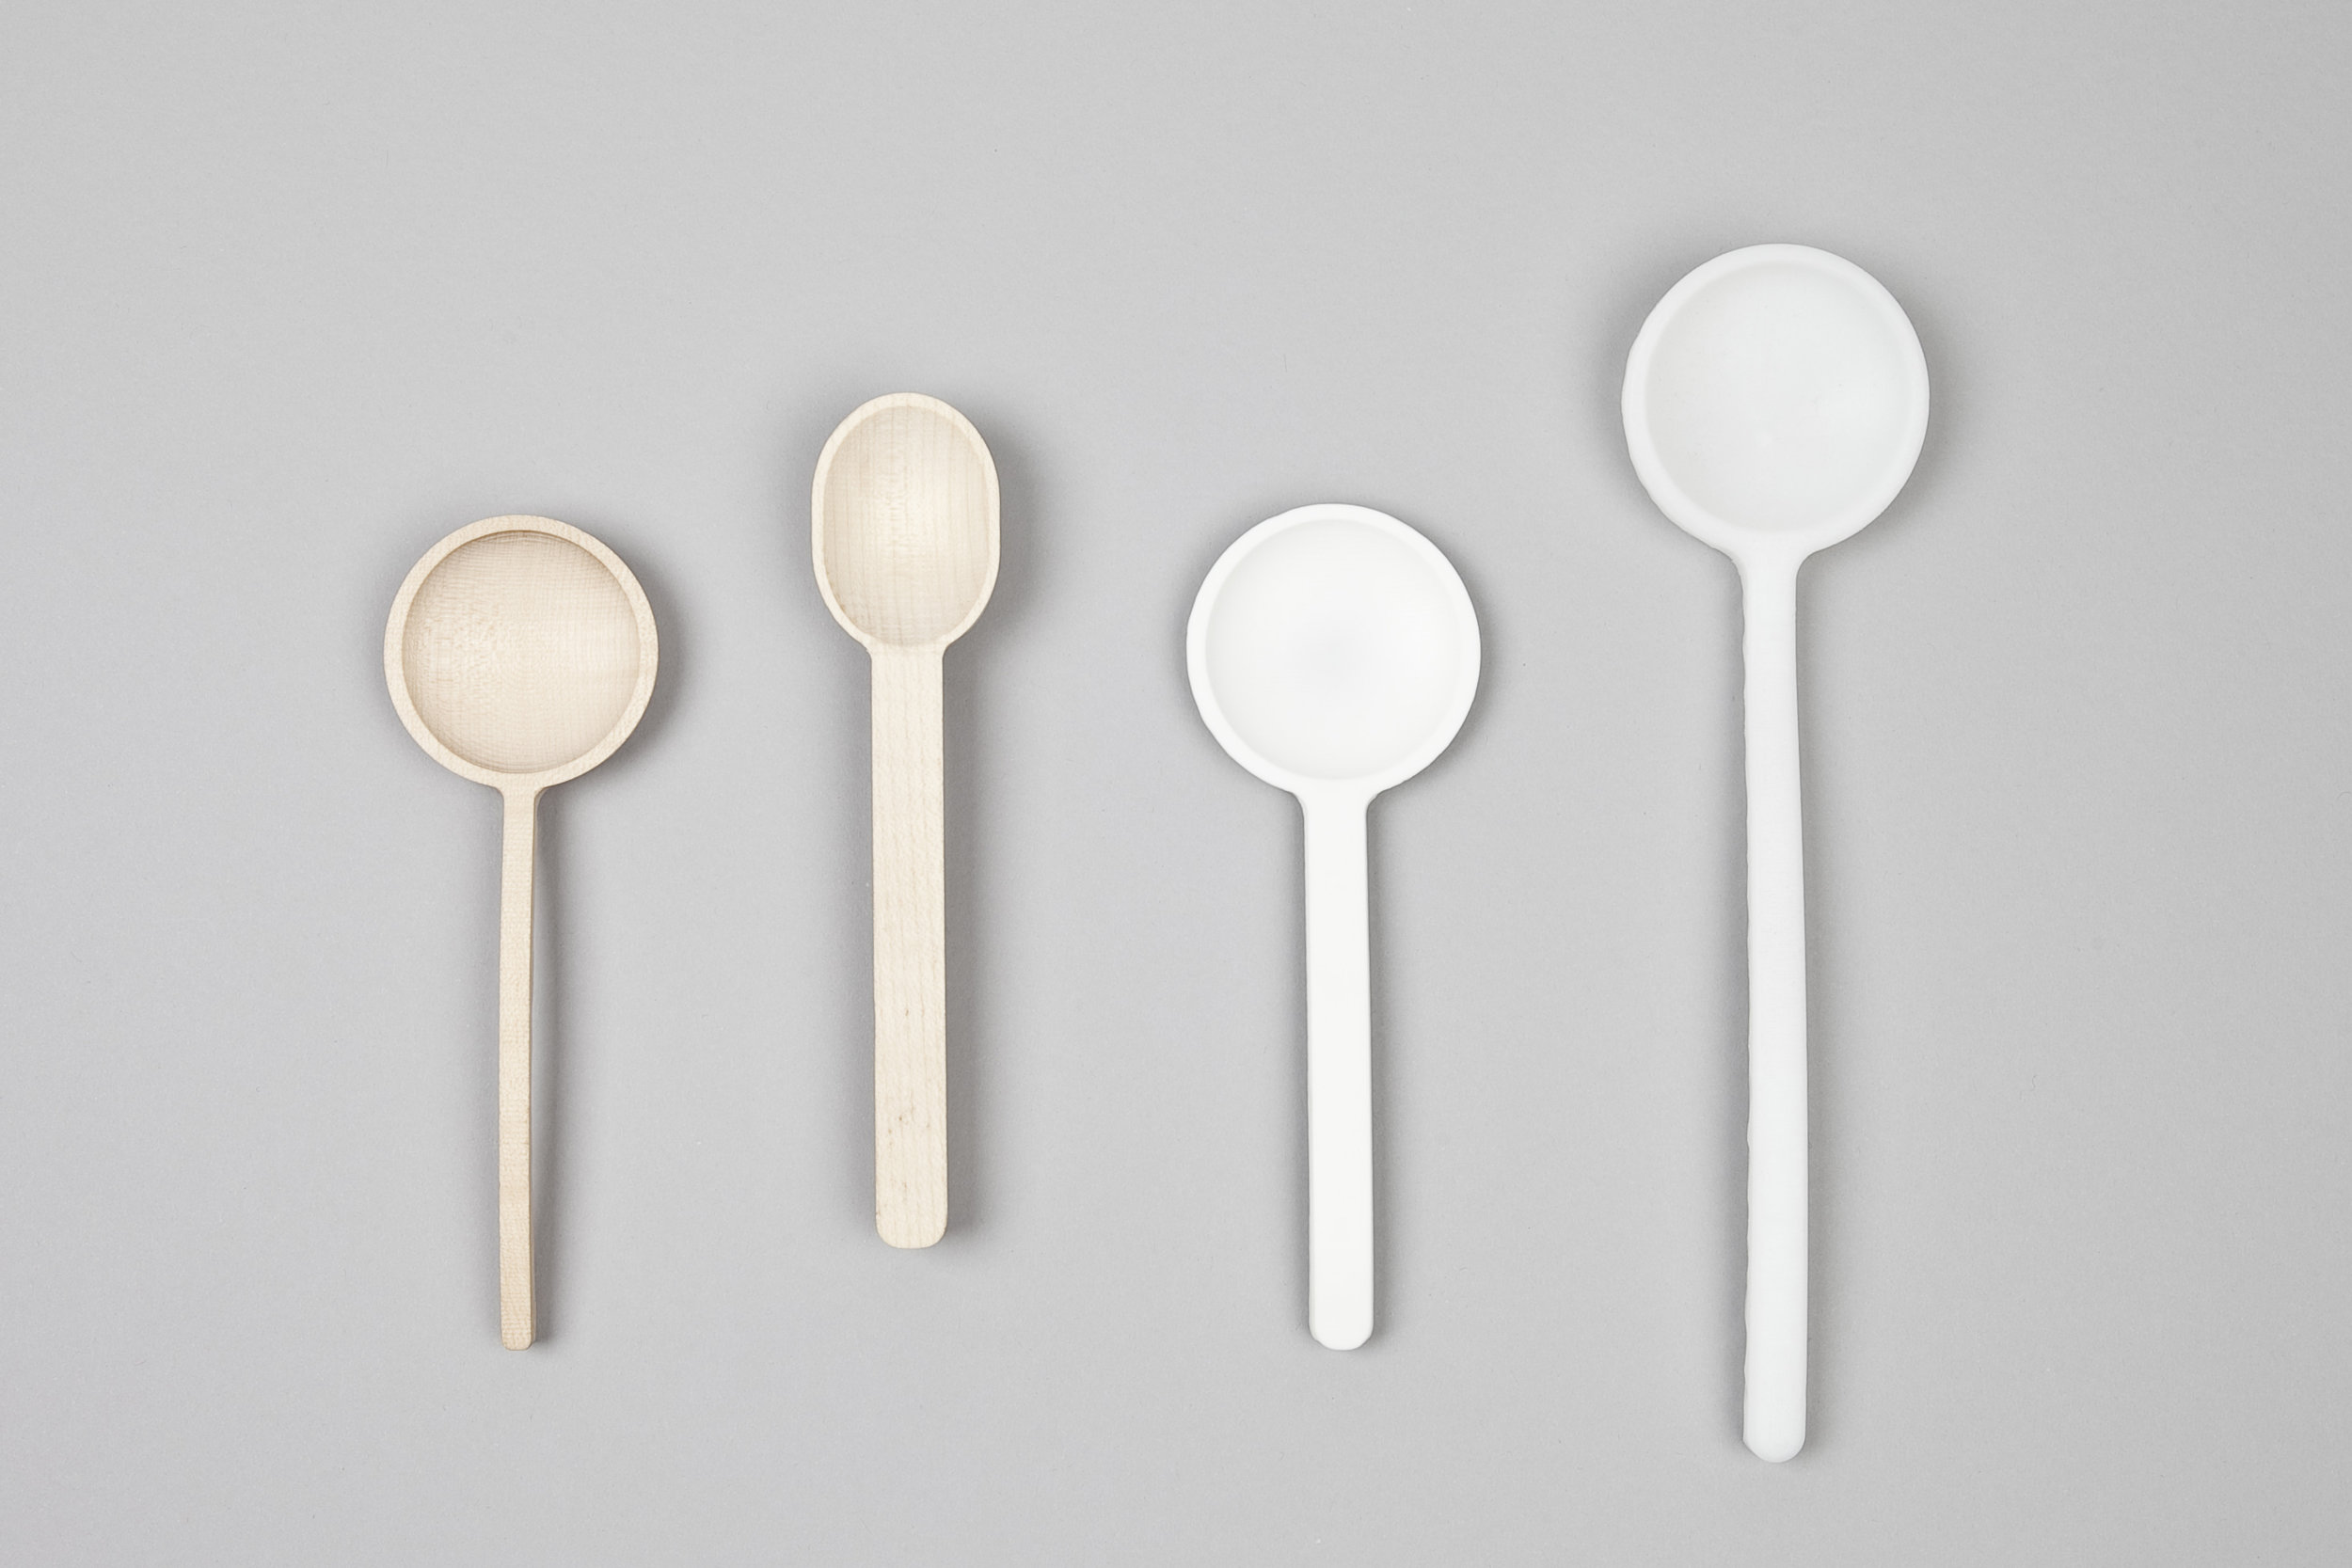 2013 / Spoons / Wood, polyethylene and DuPont Corian / Photography: Michal Florence Schorro   Parity is an exercise made in safe-food materials as wood, polyethylene and DuPont Corian where half of each spoon is handmade using carving and sanding techniques and the other half is made using CNC milling, in this way the spoons acquire a duality and an encounter between what is machine made and handmade, both of them complement each other giving the spoons a particular aesthetics.